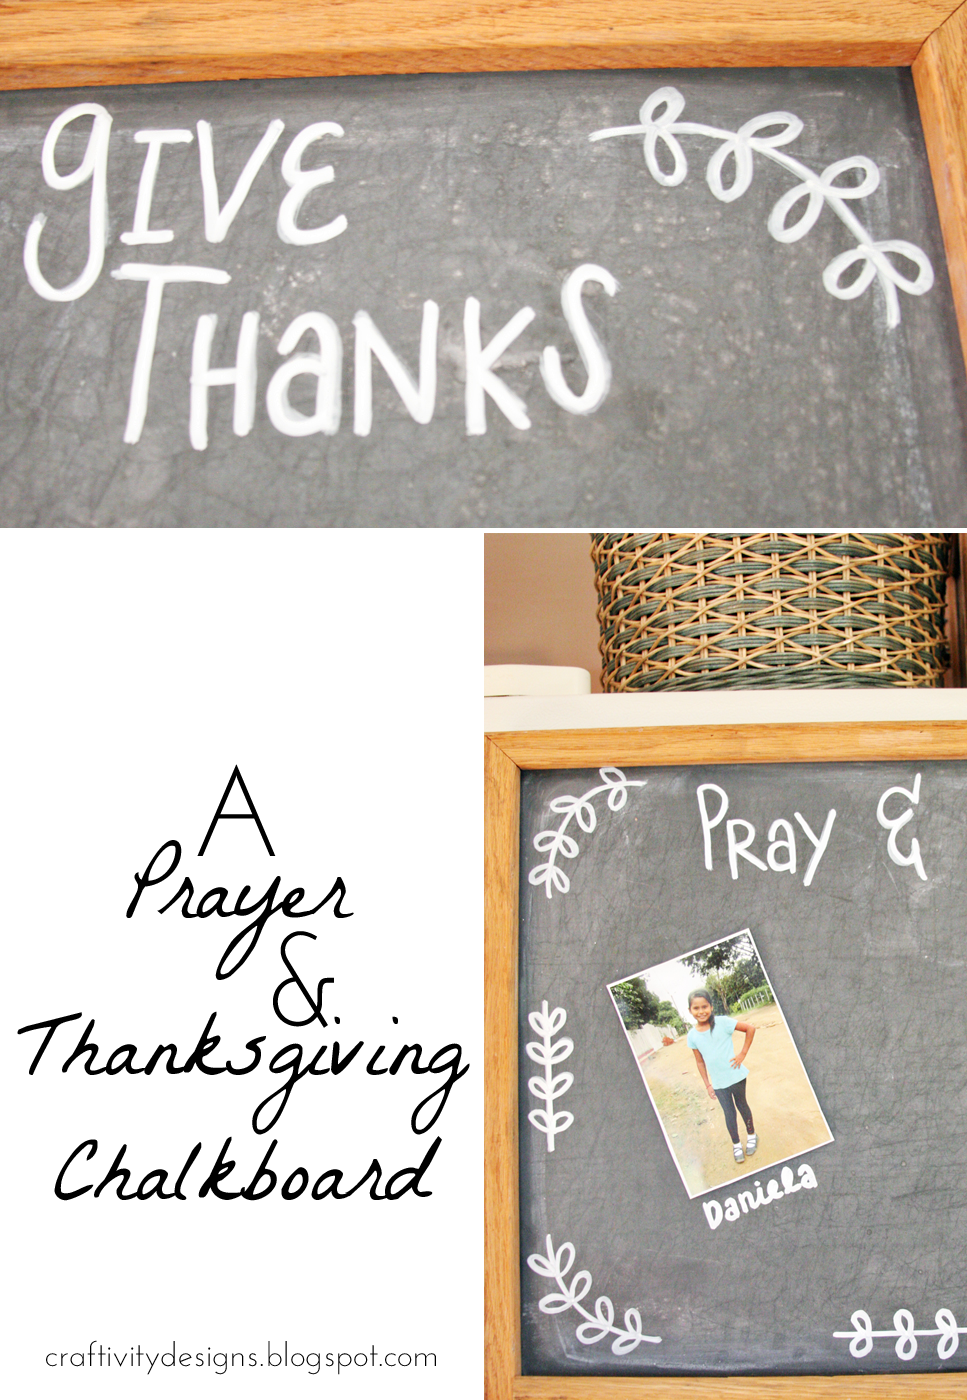 Remember to pray for your friends and family -- and to be thankful for God's blessings -- with a prayer board like this chalkboard project. We hang our prayer board in the kitchen so that we see it on a daily basis.